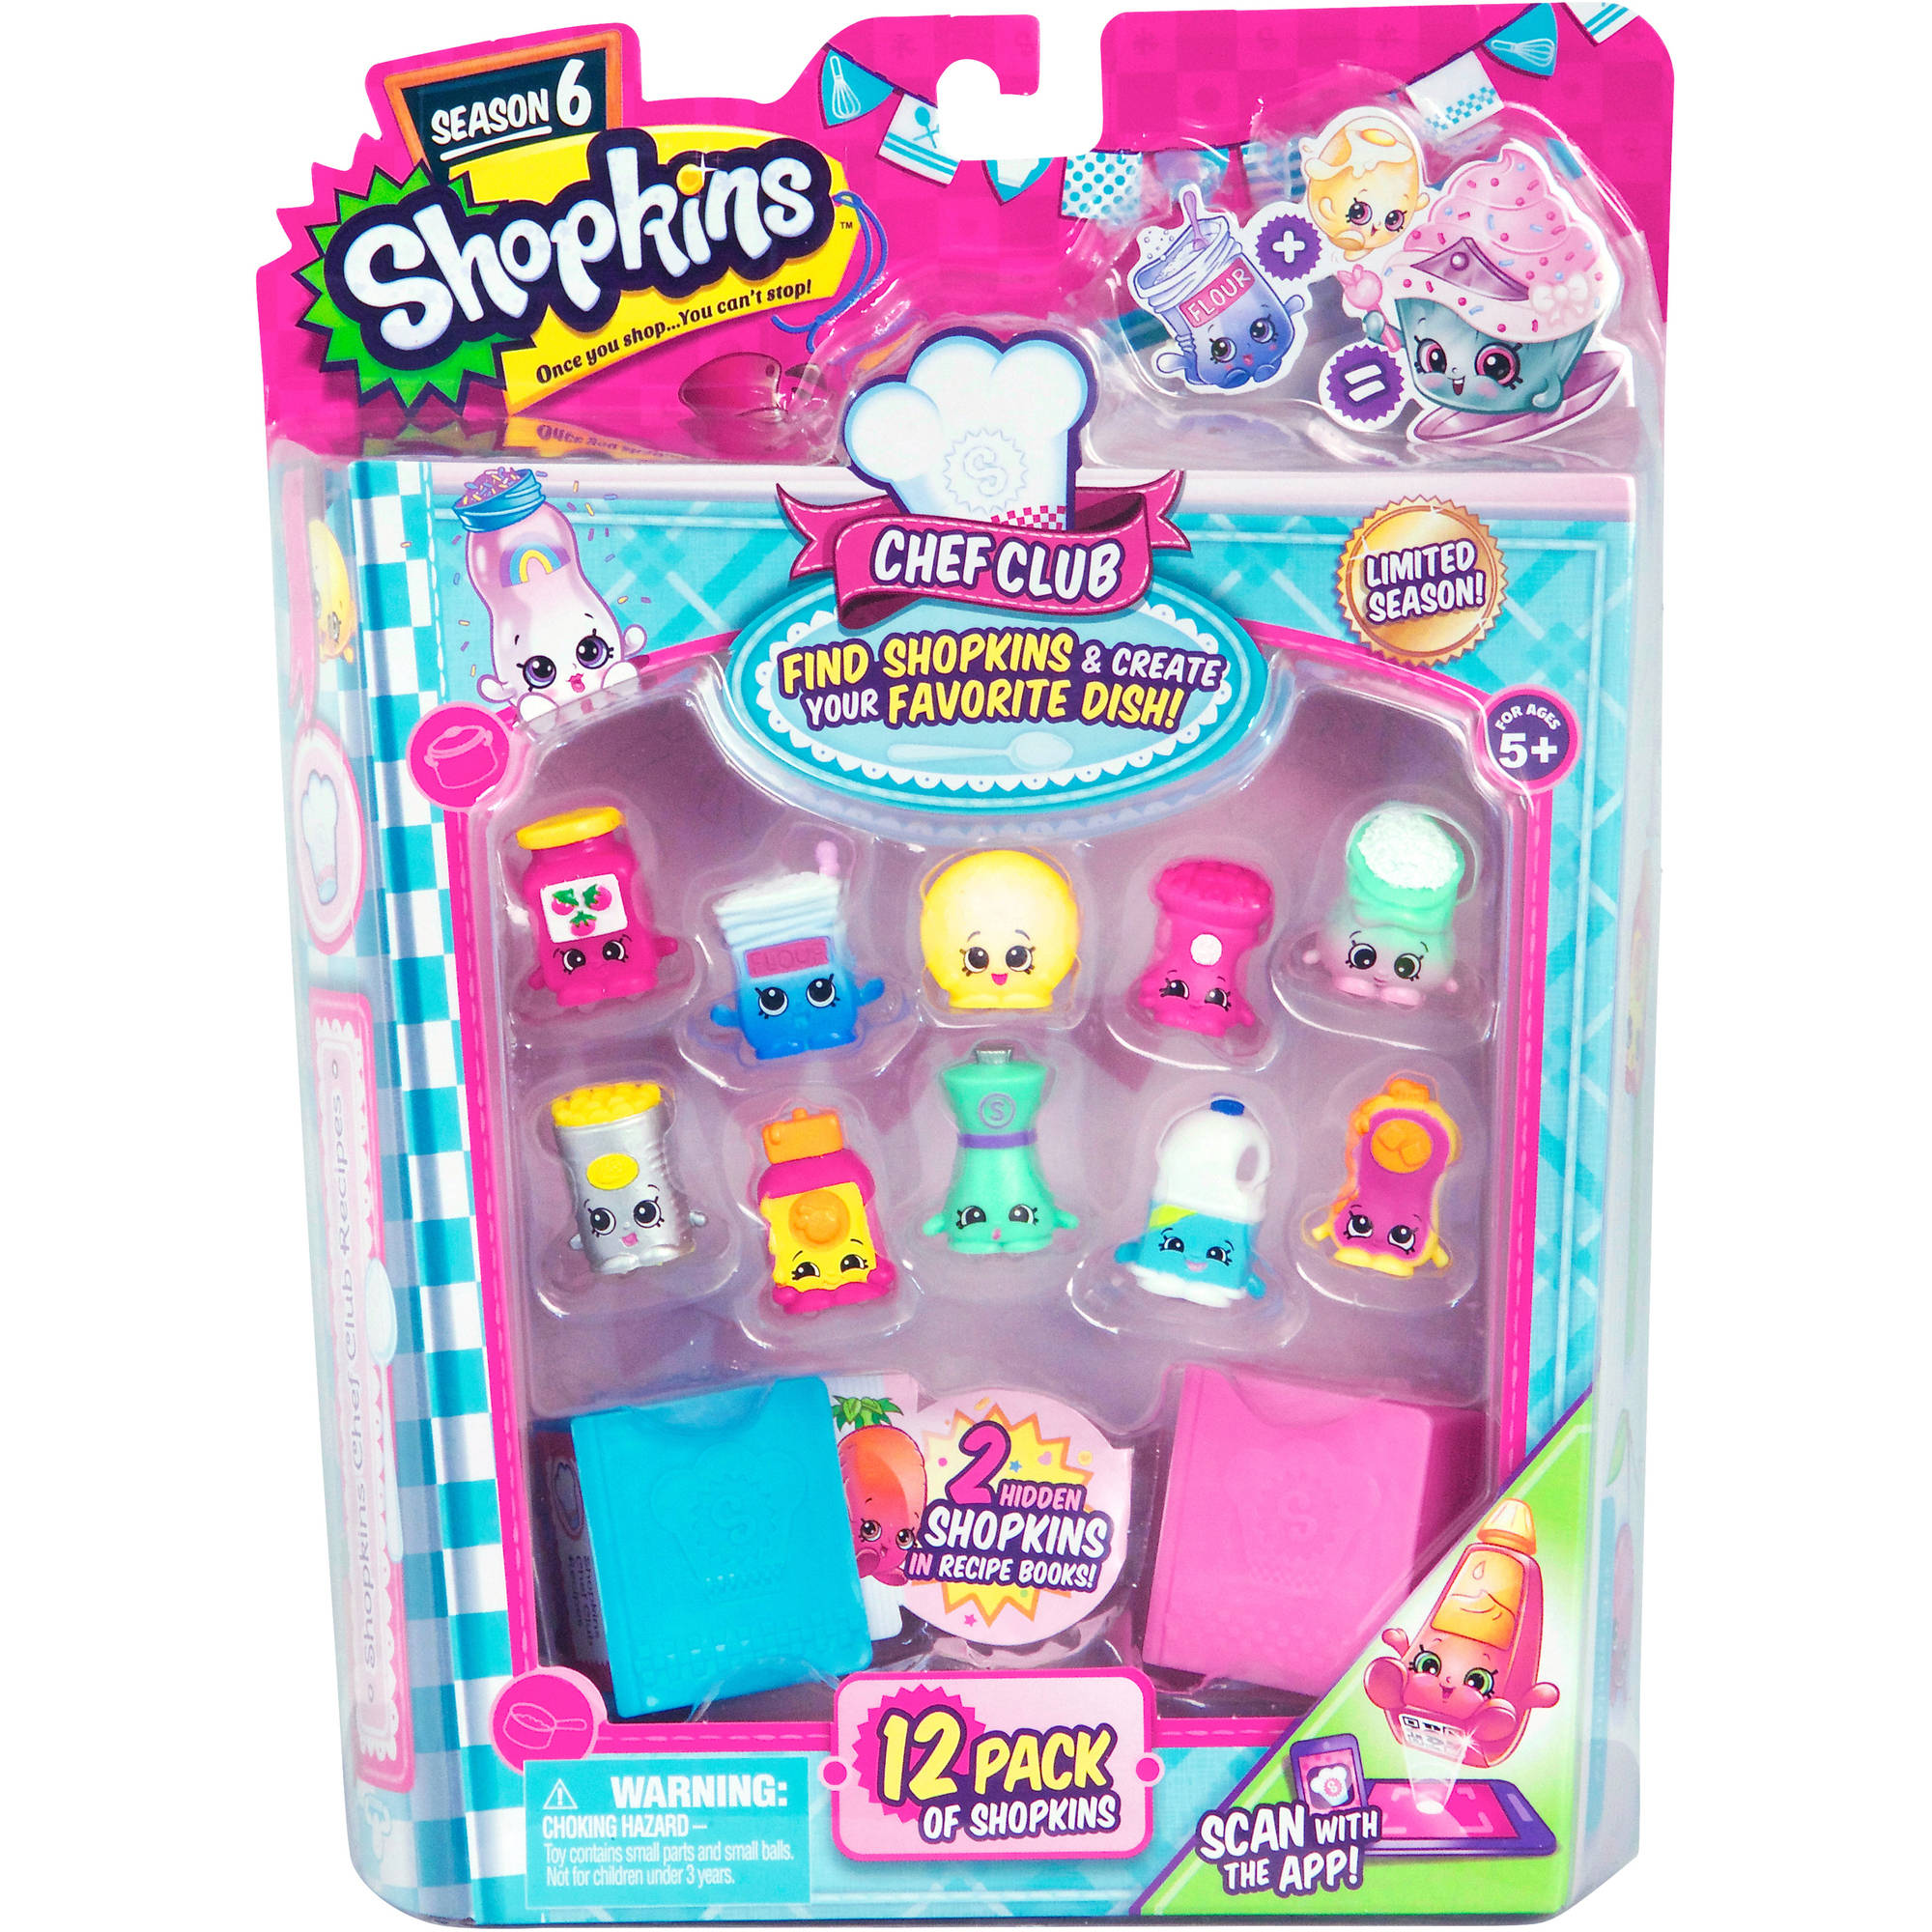 Shopkins Season 6 Chef Club, 12 Pack